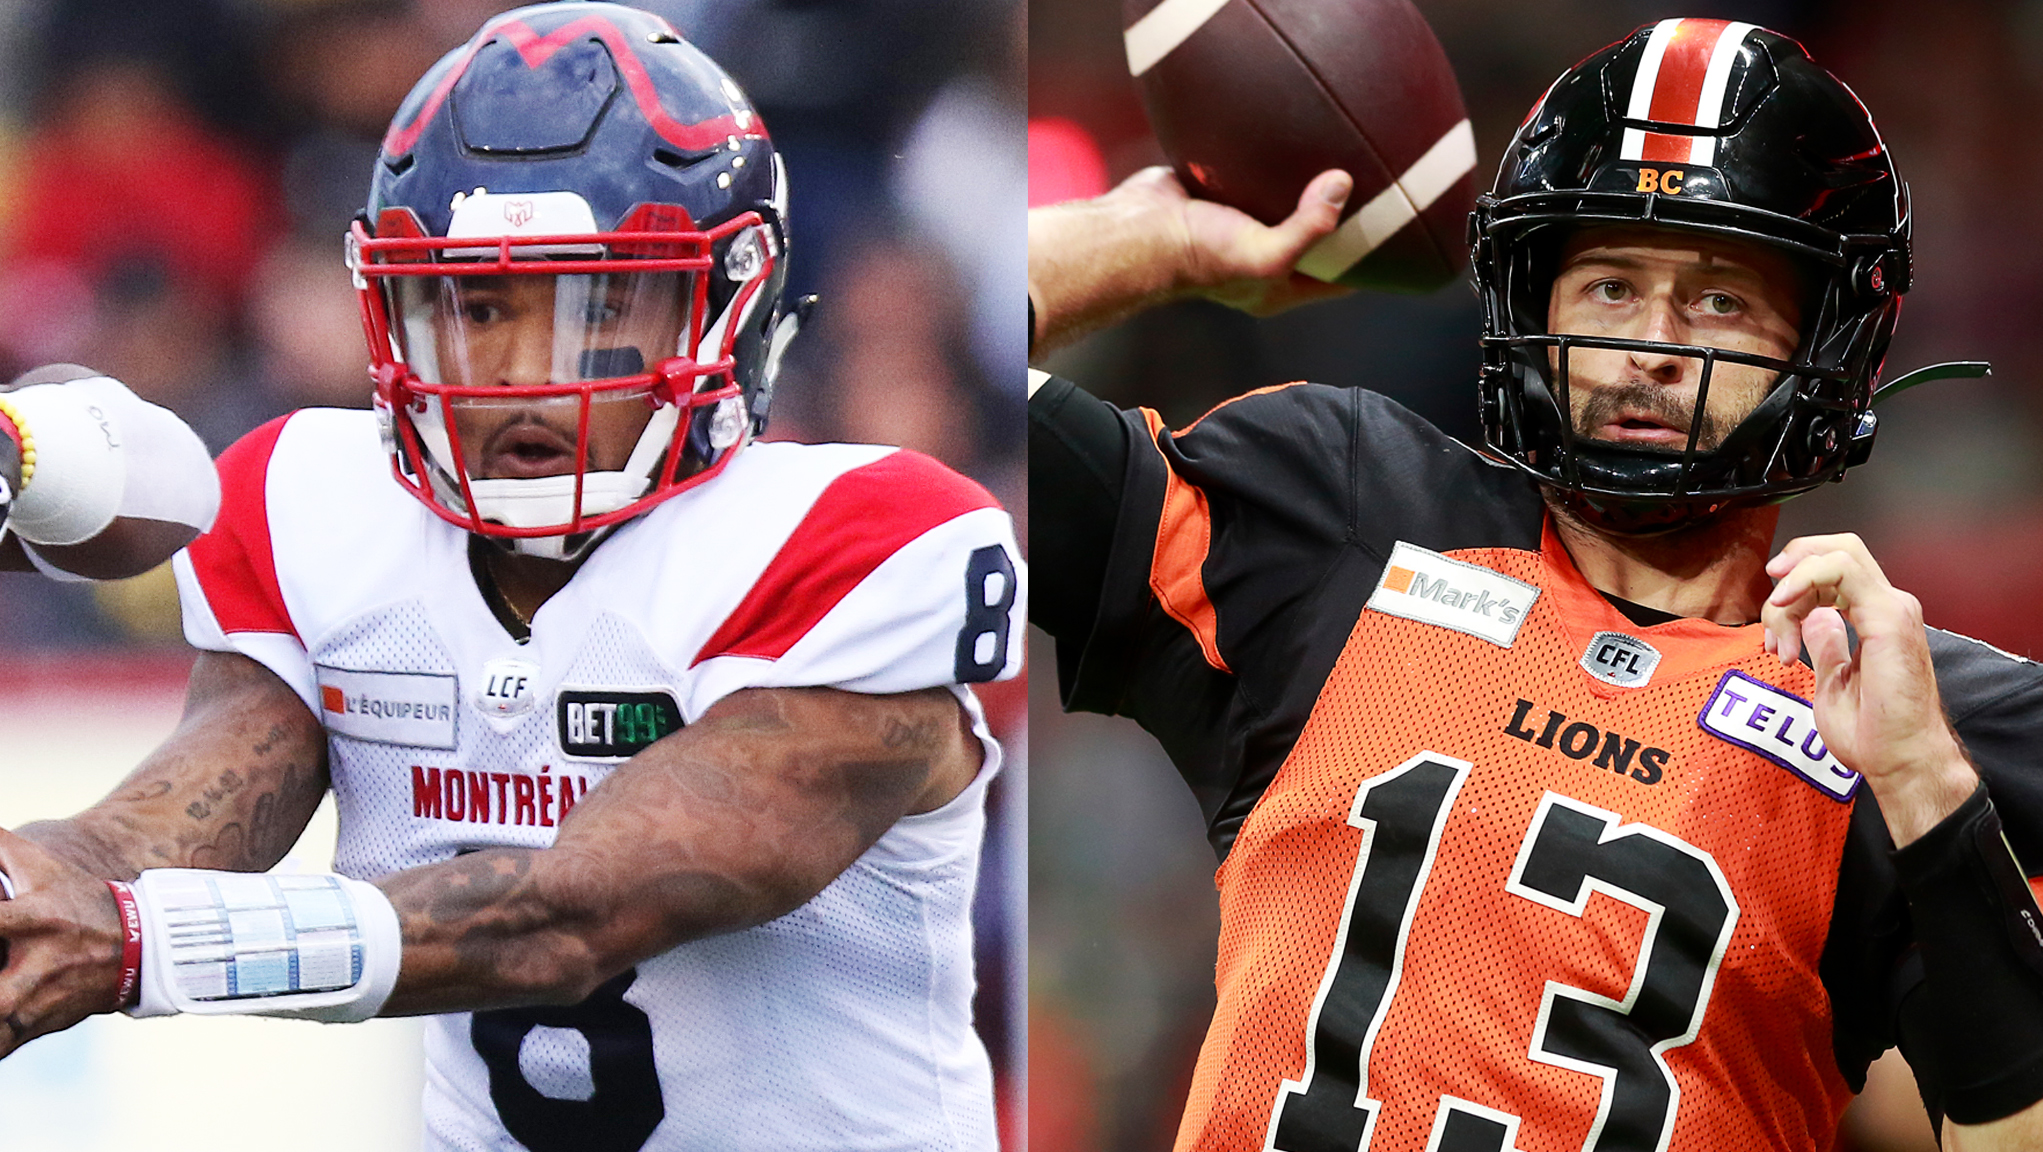 Alouettes, Lions battle to kick off Saturday Night Football